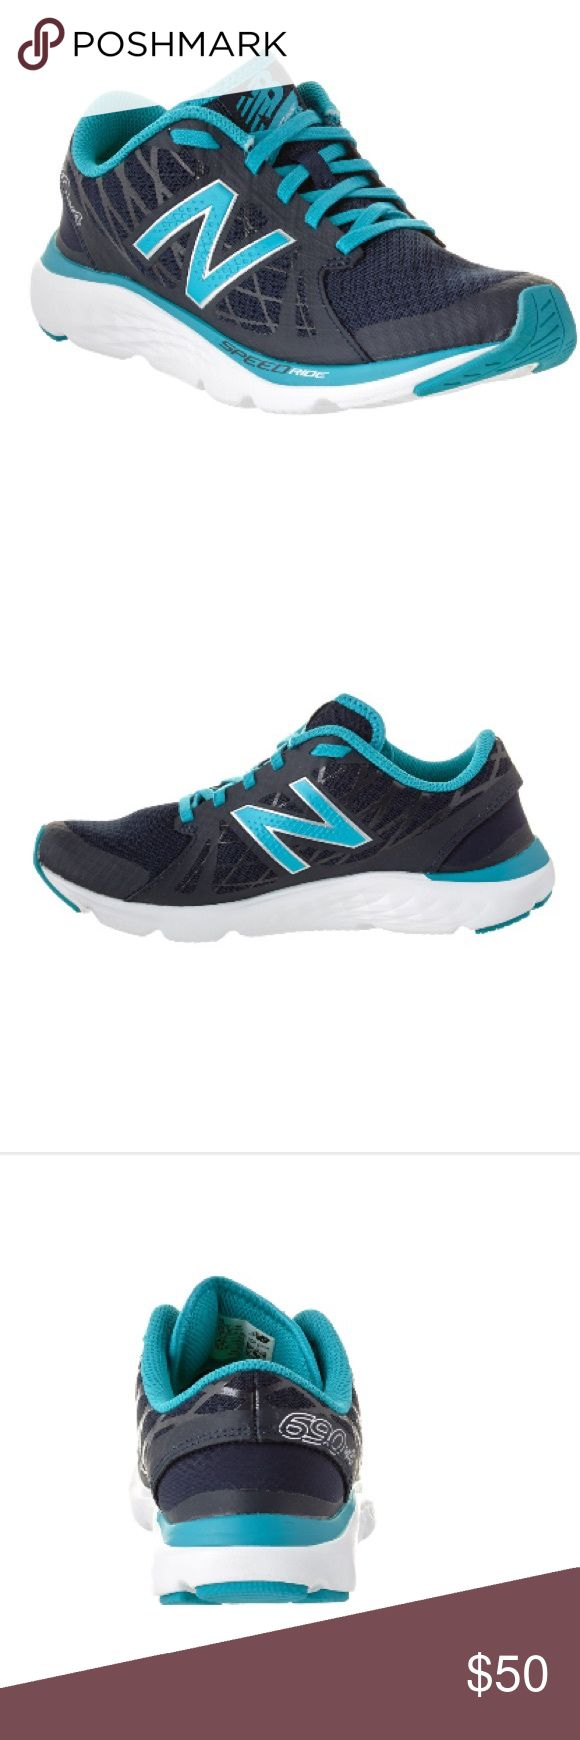 New Balance 690V4 With streamlined rubber in the heel and a sleek, seamless forefoot design, this ultralight running shoe offers freedom, fit and function to help you be fastest. Features: Breathable Mesh EVA Midsole Foam and Rubber Outsole Ground contact EVA (Ethyl Vinyl Acetate) foam for cushioning IMEVA (injection-molded EVA foam) midsole for firm yet flexible cushioning No-sew material application Rubber outsole Seamless Sock Construction Synthetic/mesh upper New Balance Shoes Athletic…